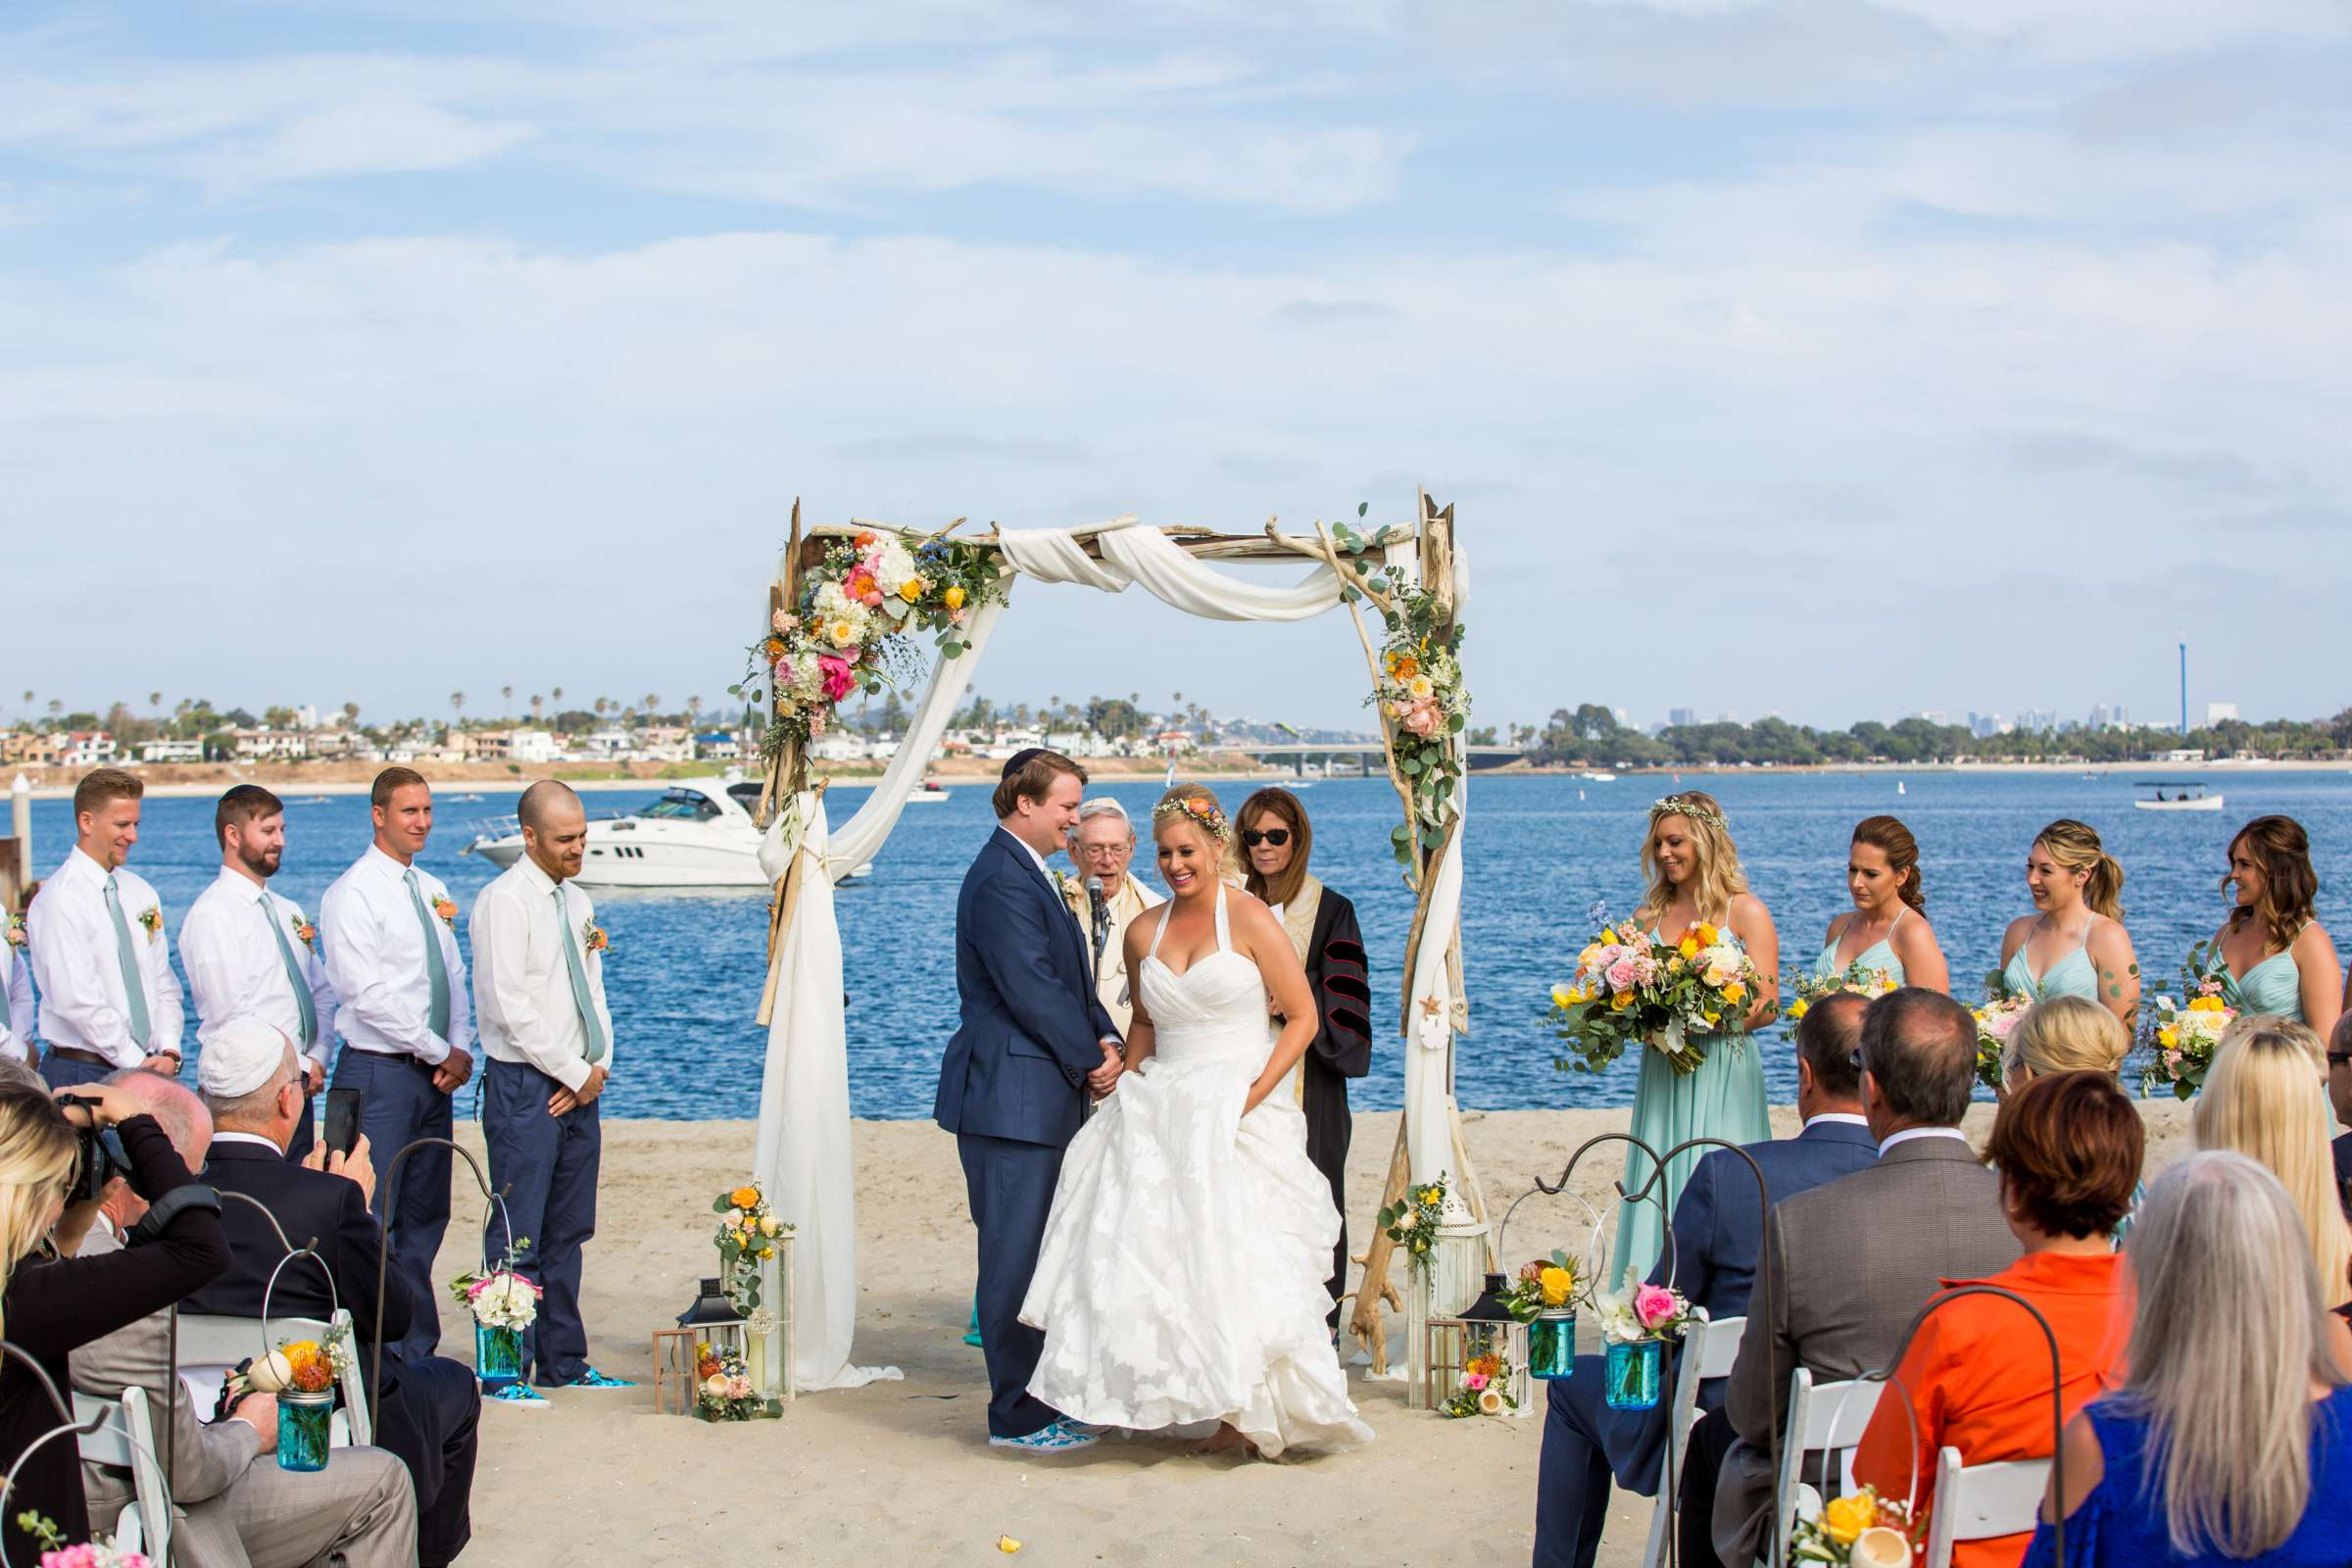 Catamaran Resort Wedding coordinated by Lavish Weddings, Brittany and David Wedding Photo #74 by True Photography